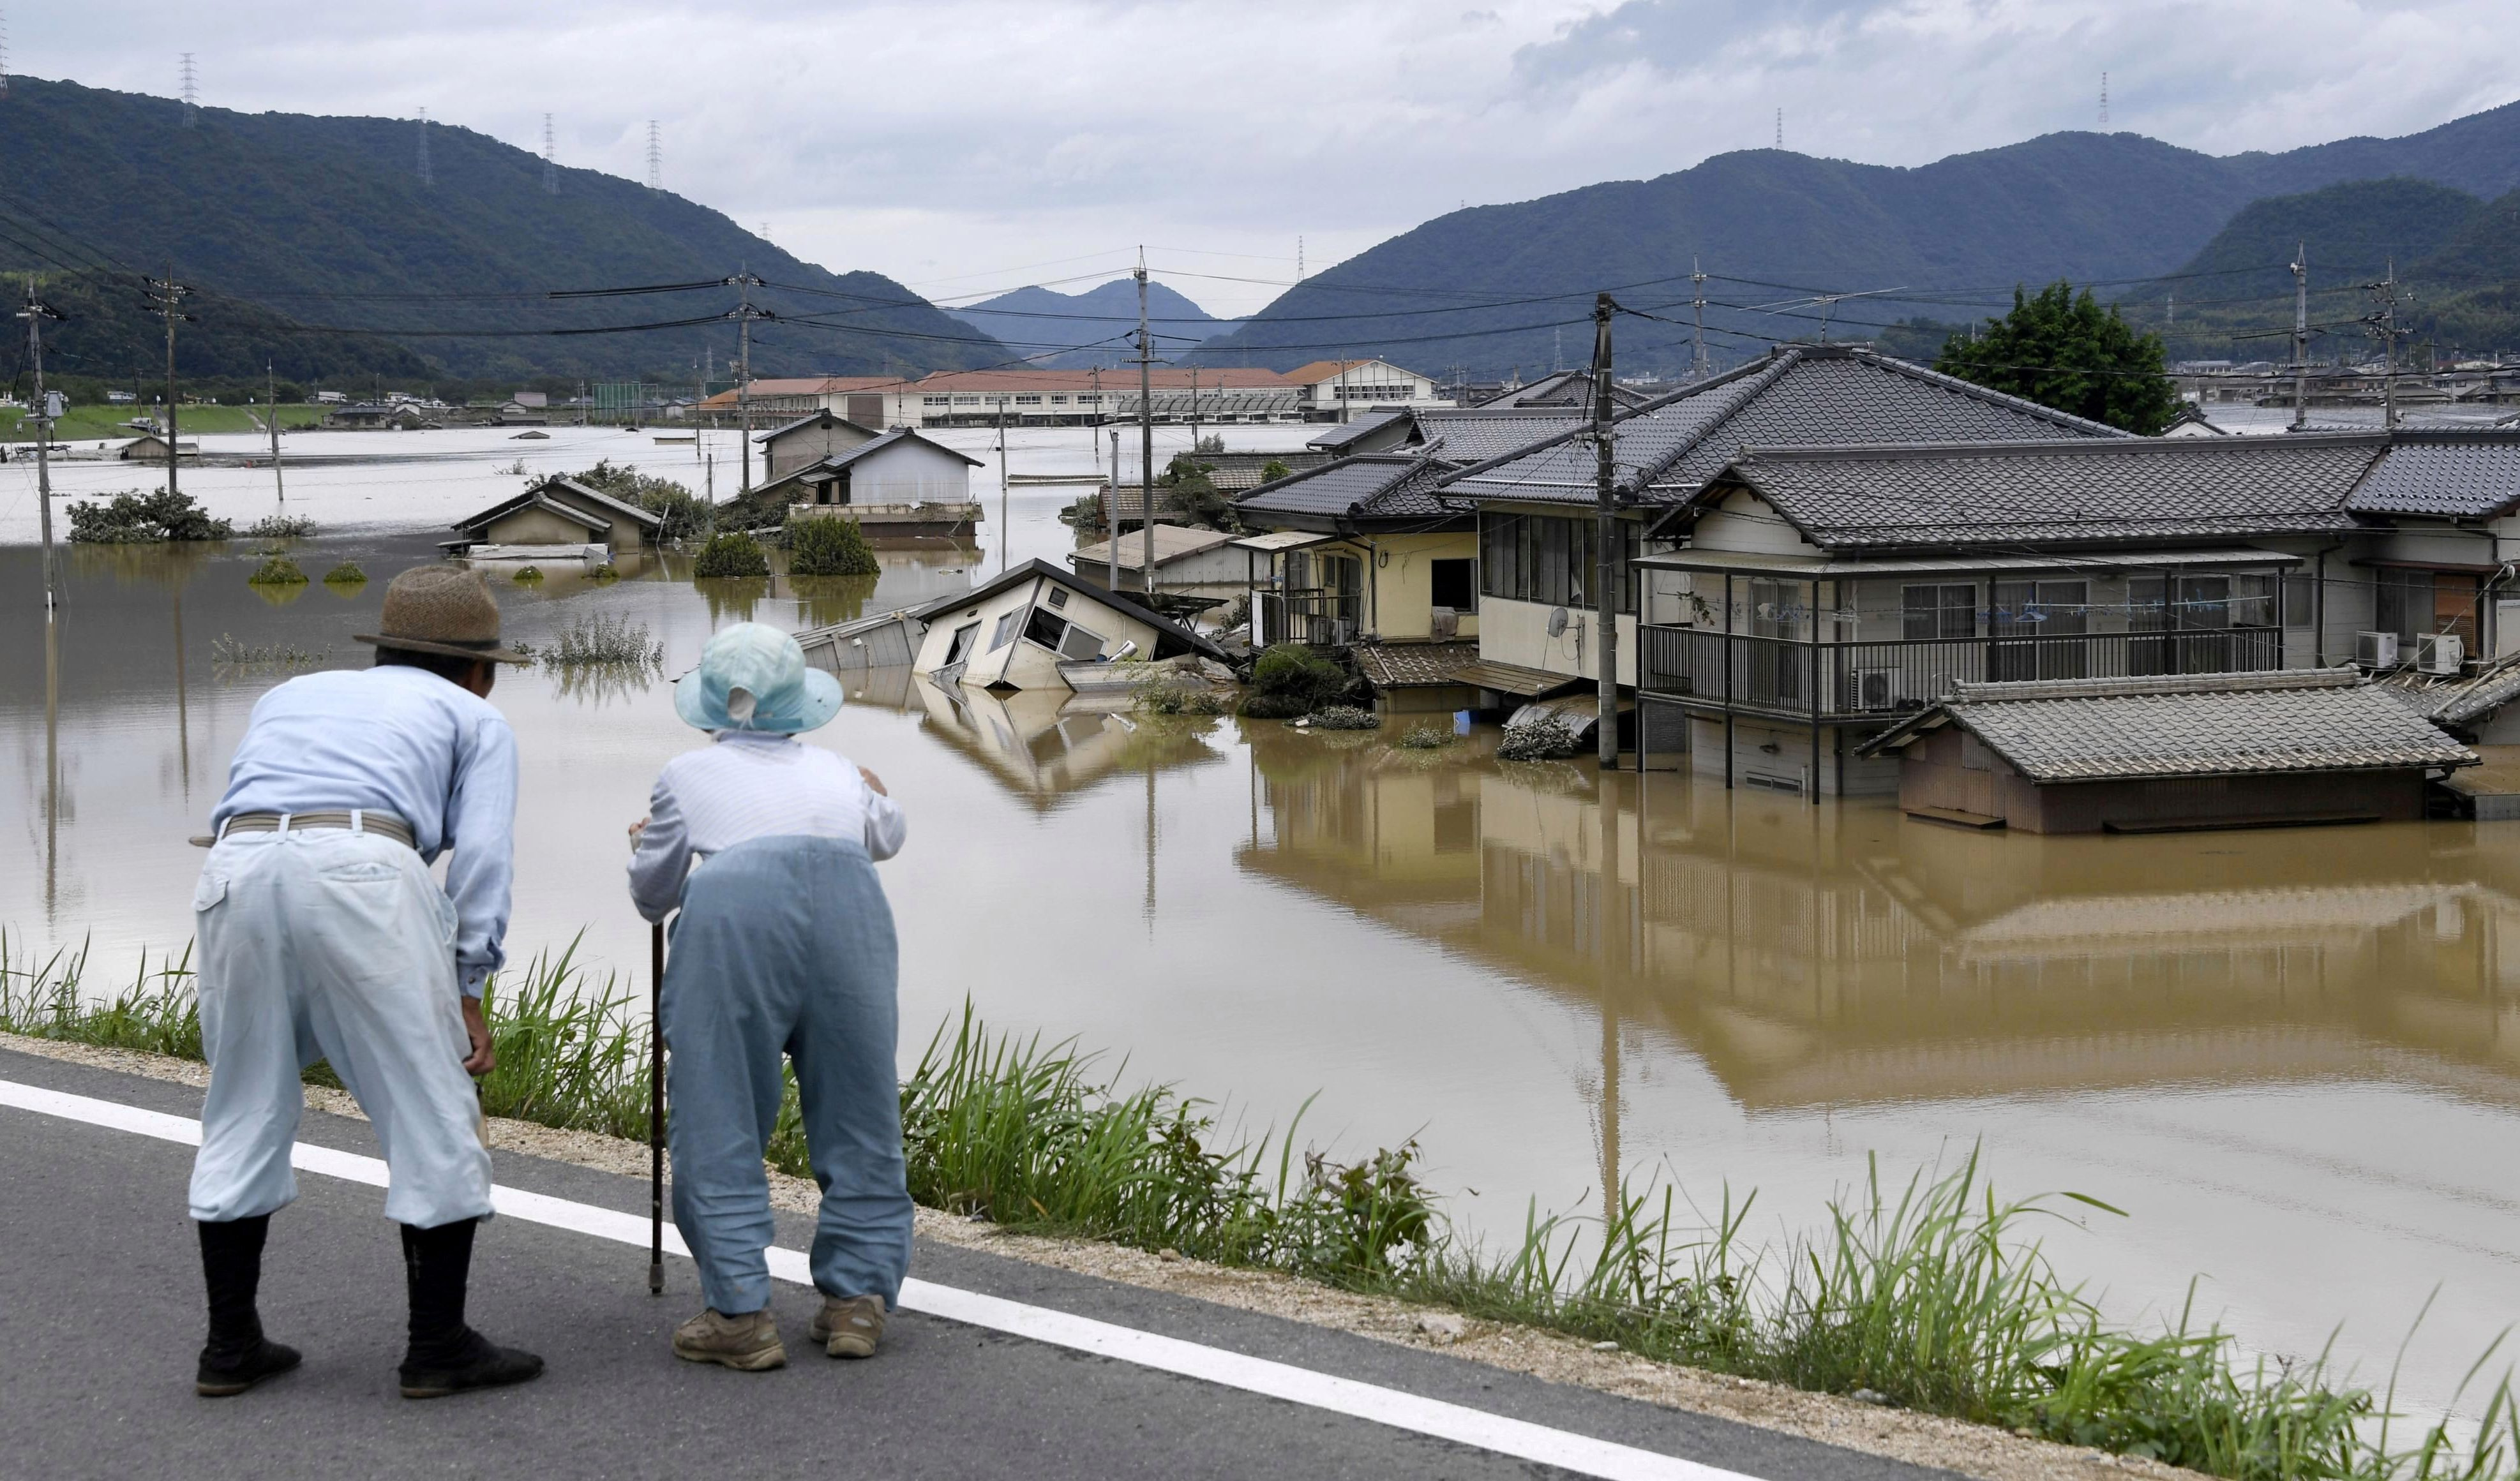 An elderly couple looks at a flooded area after heavy rain in Kurashiki, Okayama Prefecture, Japan, in this photo taken by Kyodo July 8, 2018. Mandatory credit Kyodo/via REUTERS ATTENTION EDITORS - THIS IMAGE WAS PROVIDED BY A THIRD PARTY. MANDATORY CREDIT. JAPAN OUT. NO COMMERCIAL OR EDITORIAL SALES IN JAPAN.     TPX IMAGES OF THE DAY - RC1BF4D778A0